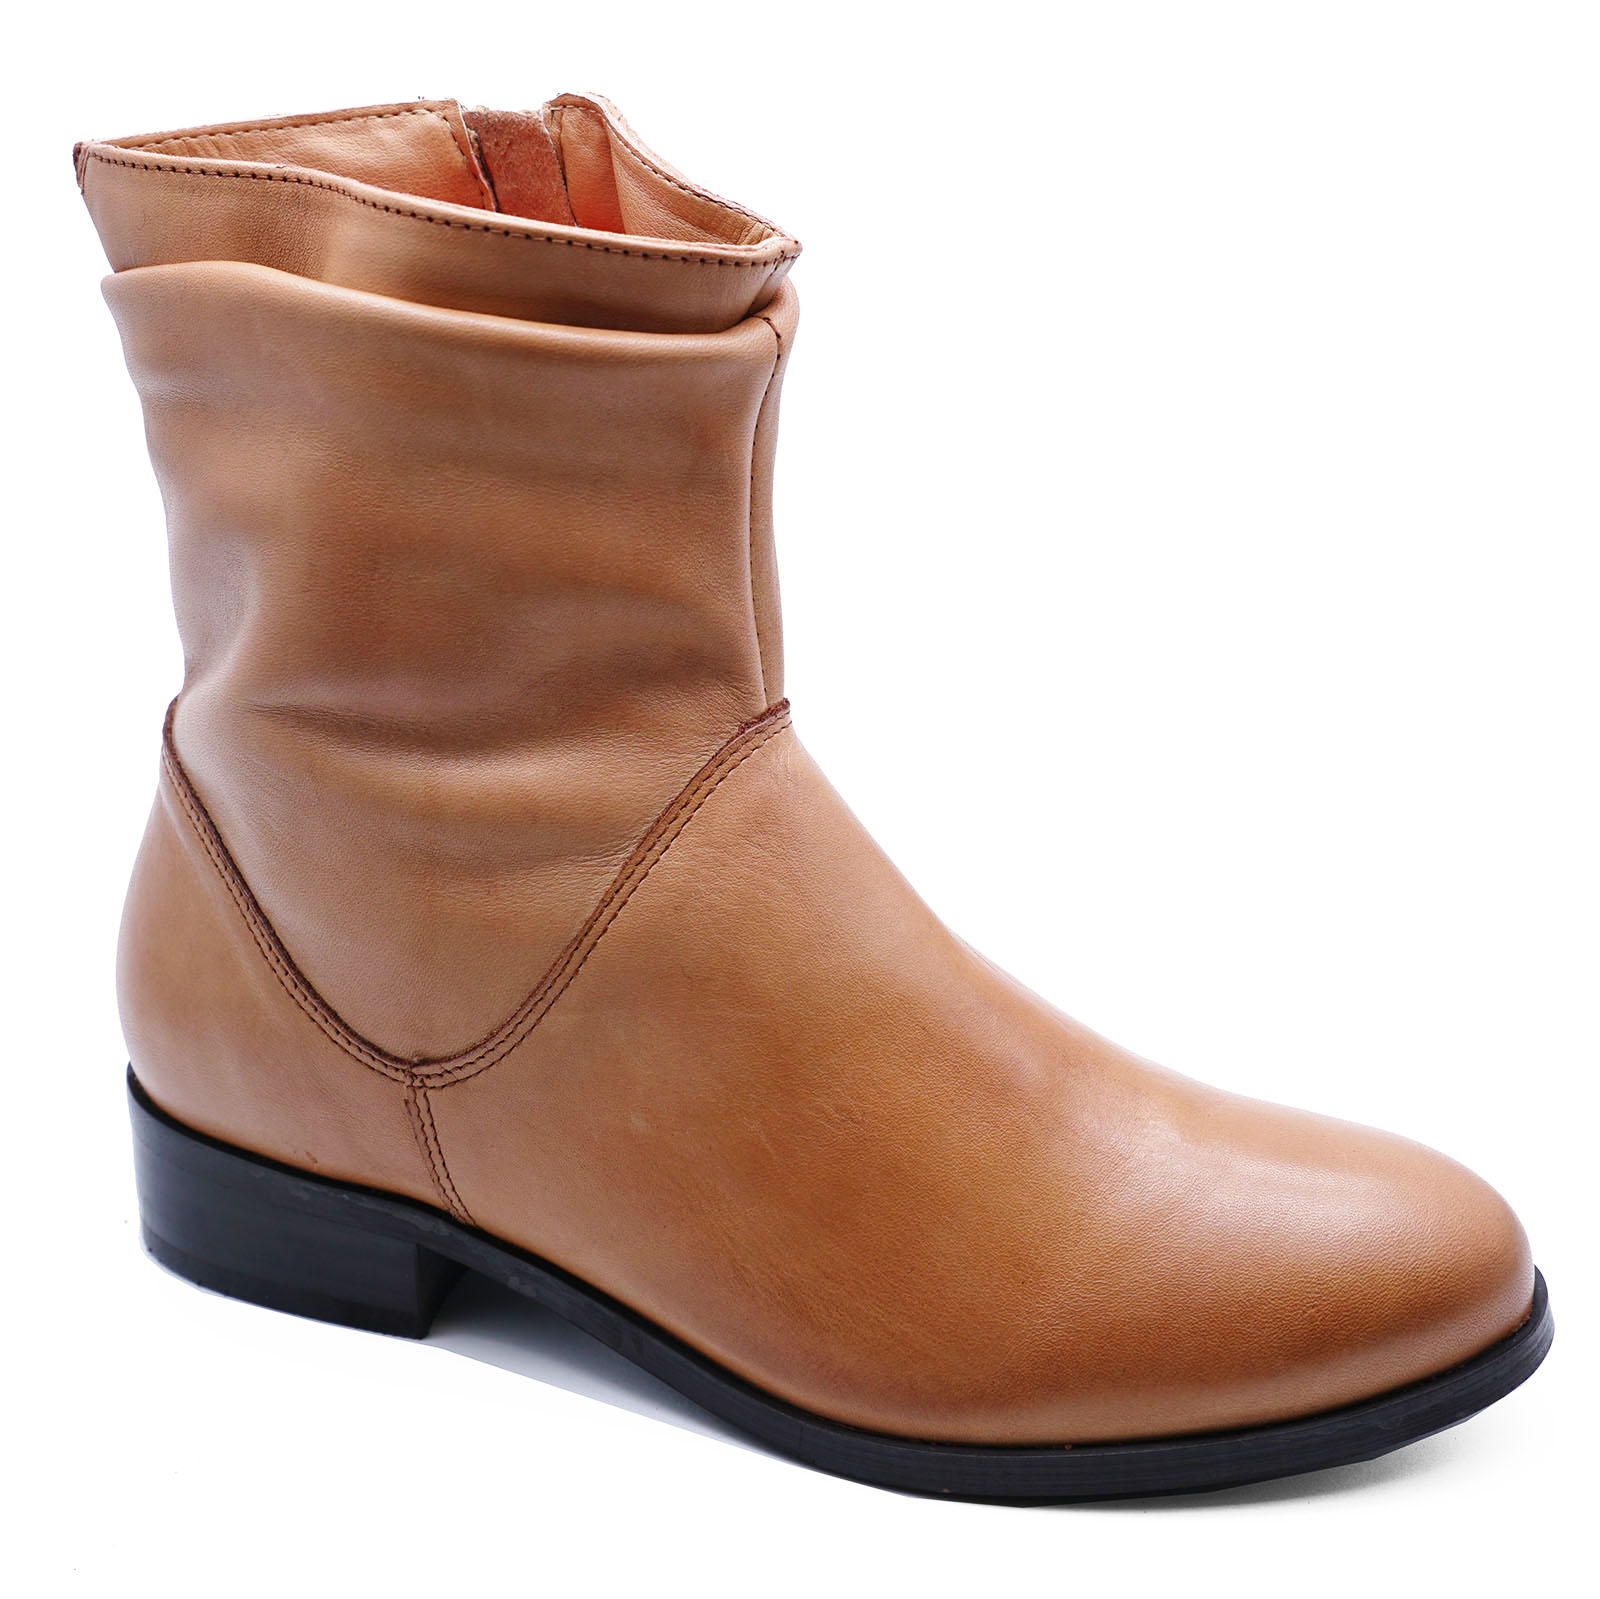 LADIES-FLAT-GENUINE-LEATHER-TAN-ZIP-UP-ANKLE-CALF-BOOTS-COMFY-SHOES-SIZES-2-9 thumbnail 27